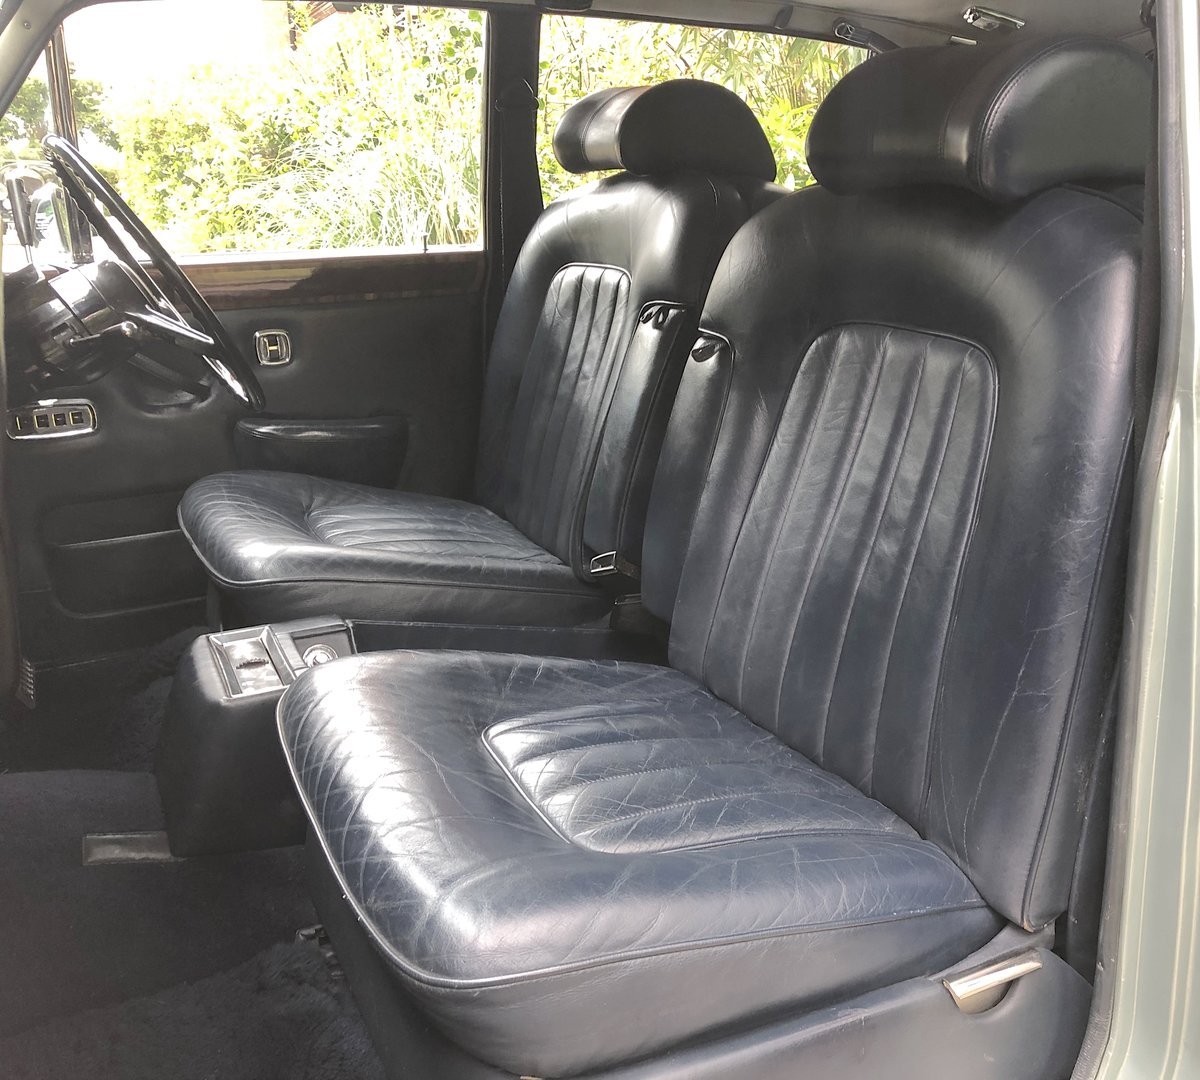 1979 ROLLS ROYCE SILVER WRAITH II 18K MILES 1 OWNER 35 YEARS For Sale (picture 5 of 6)